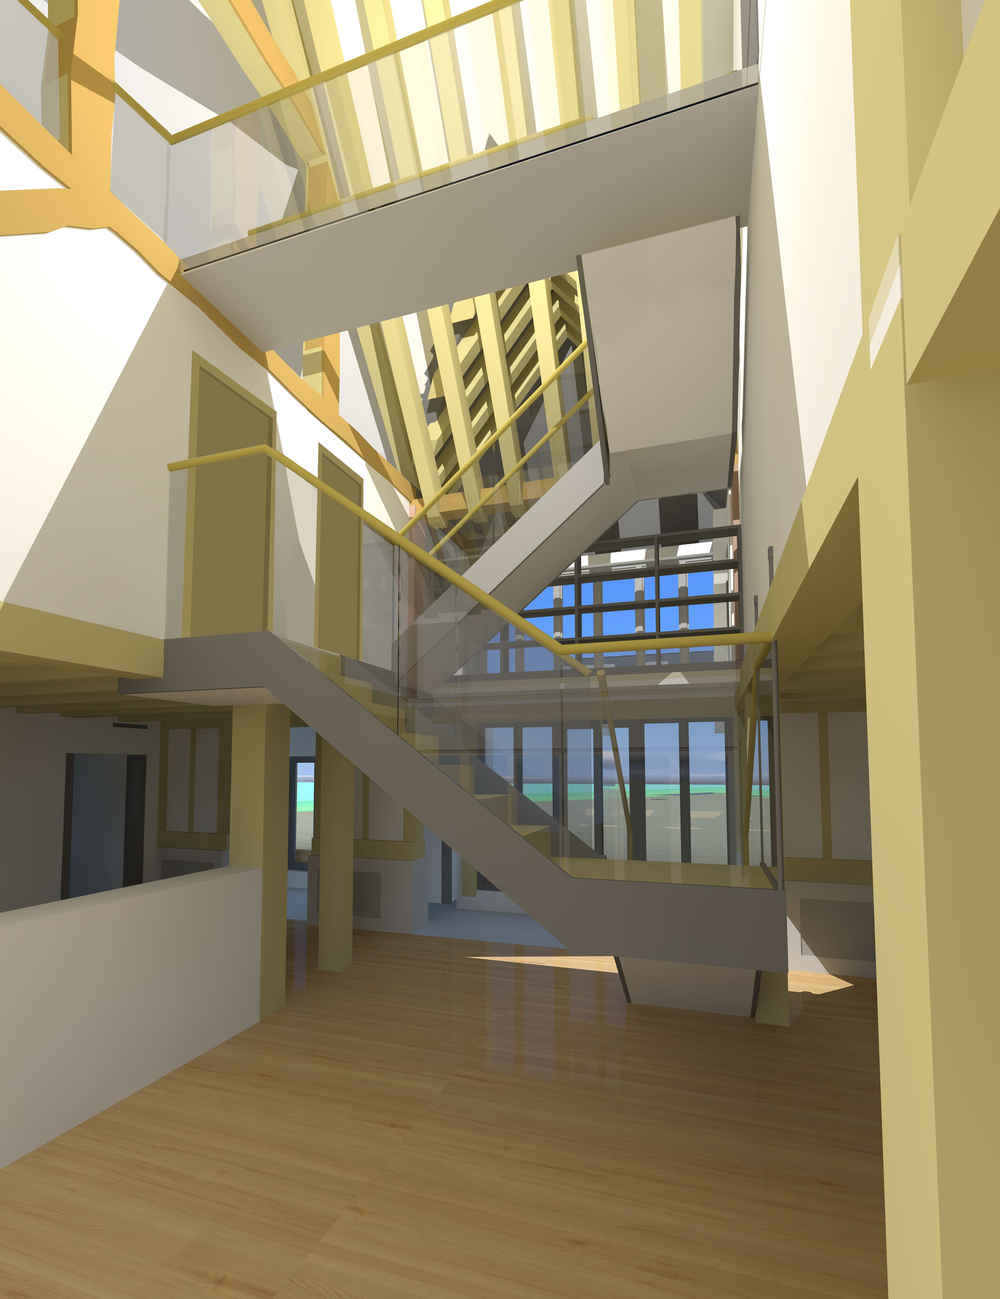 Computer render of early staircase proposal